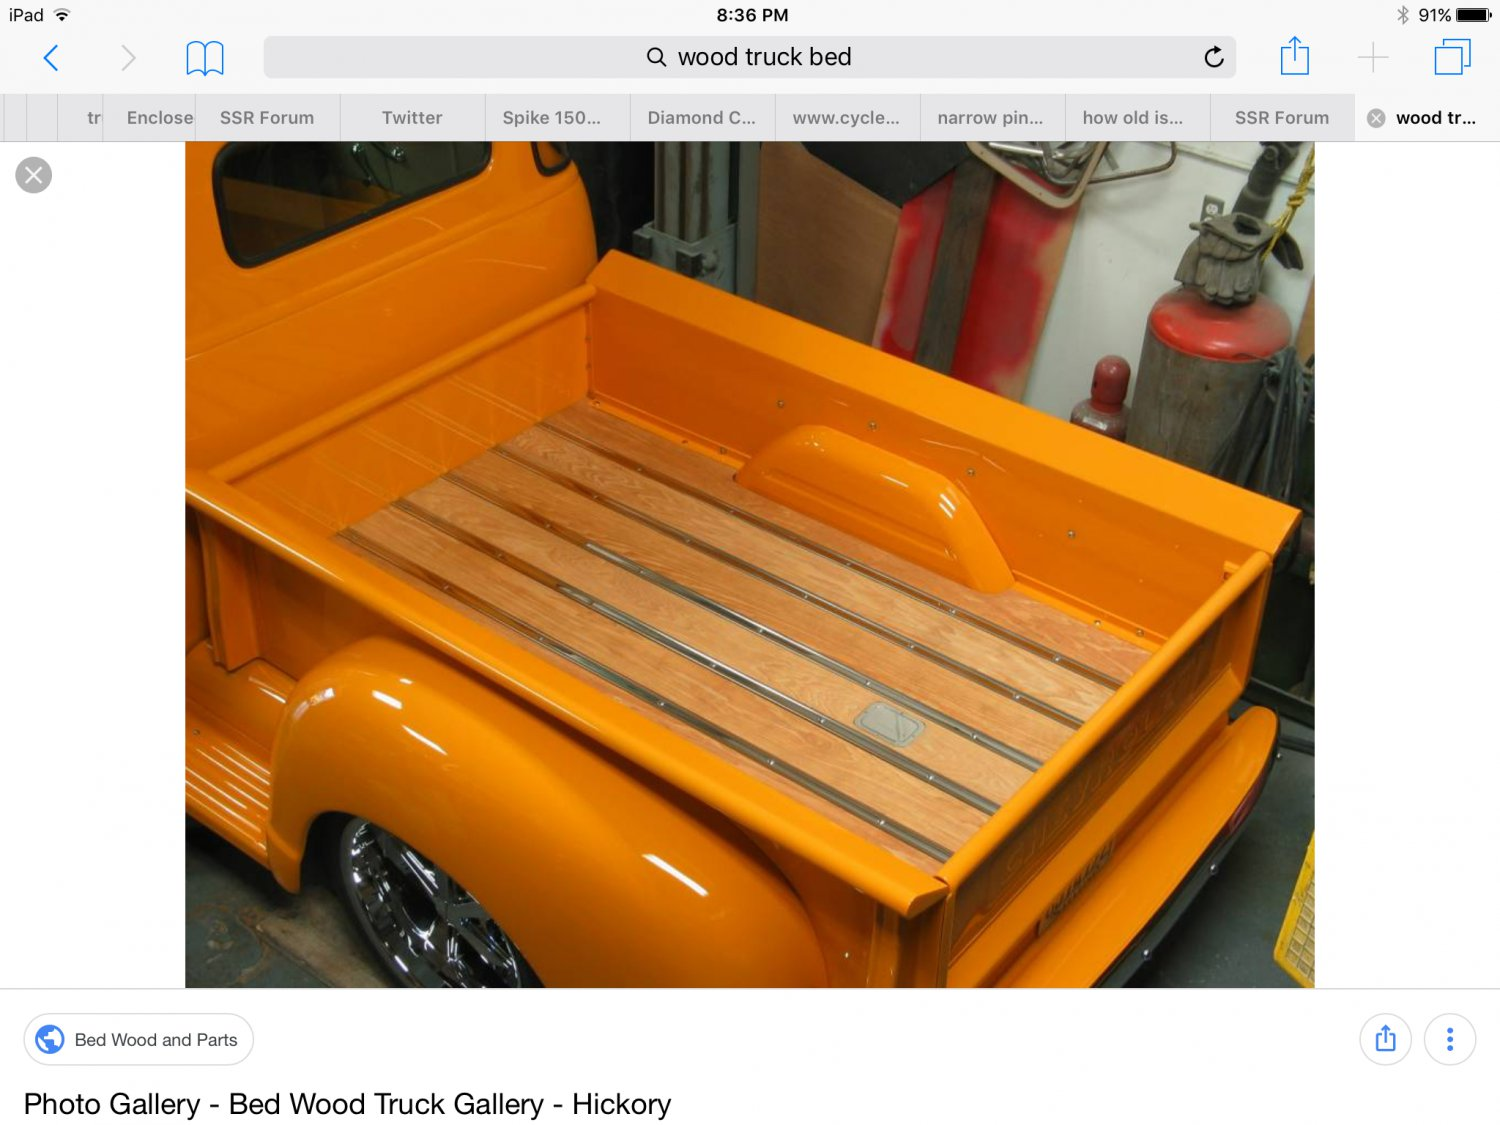 Wood Truck Beds